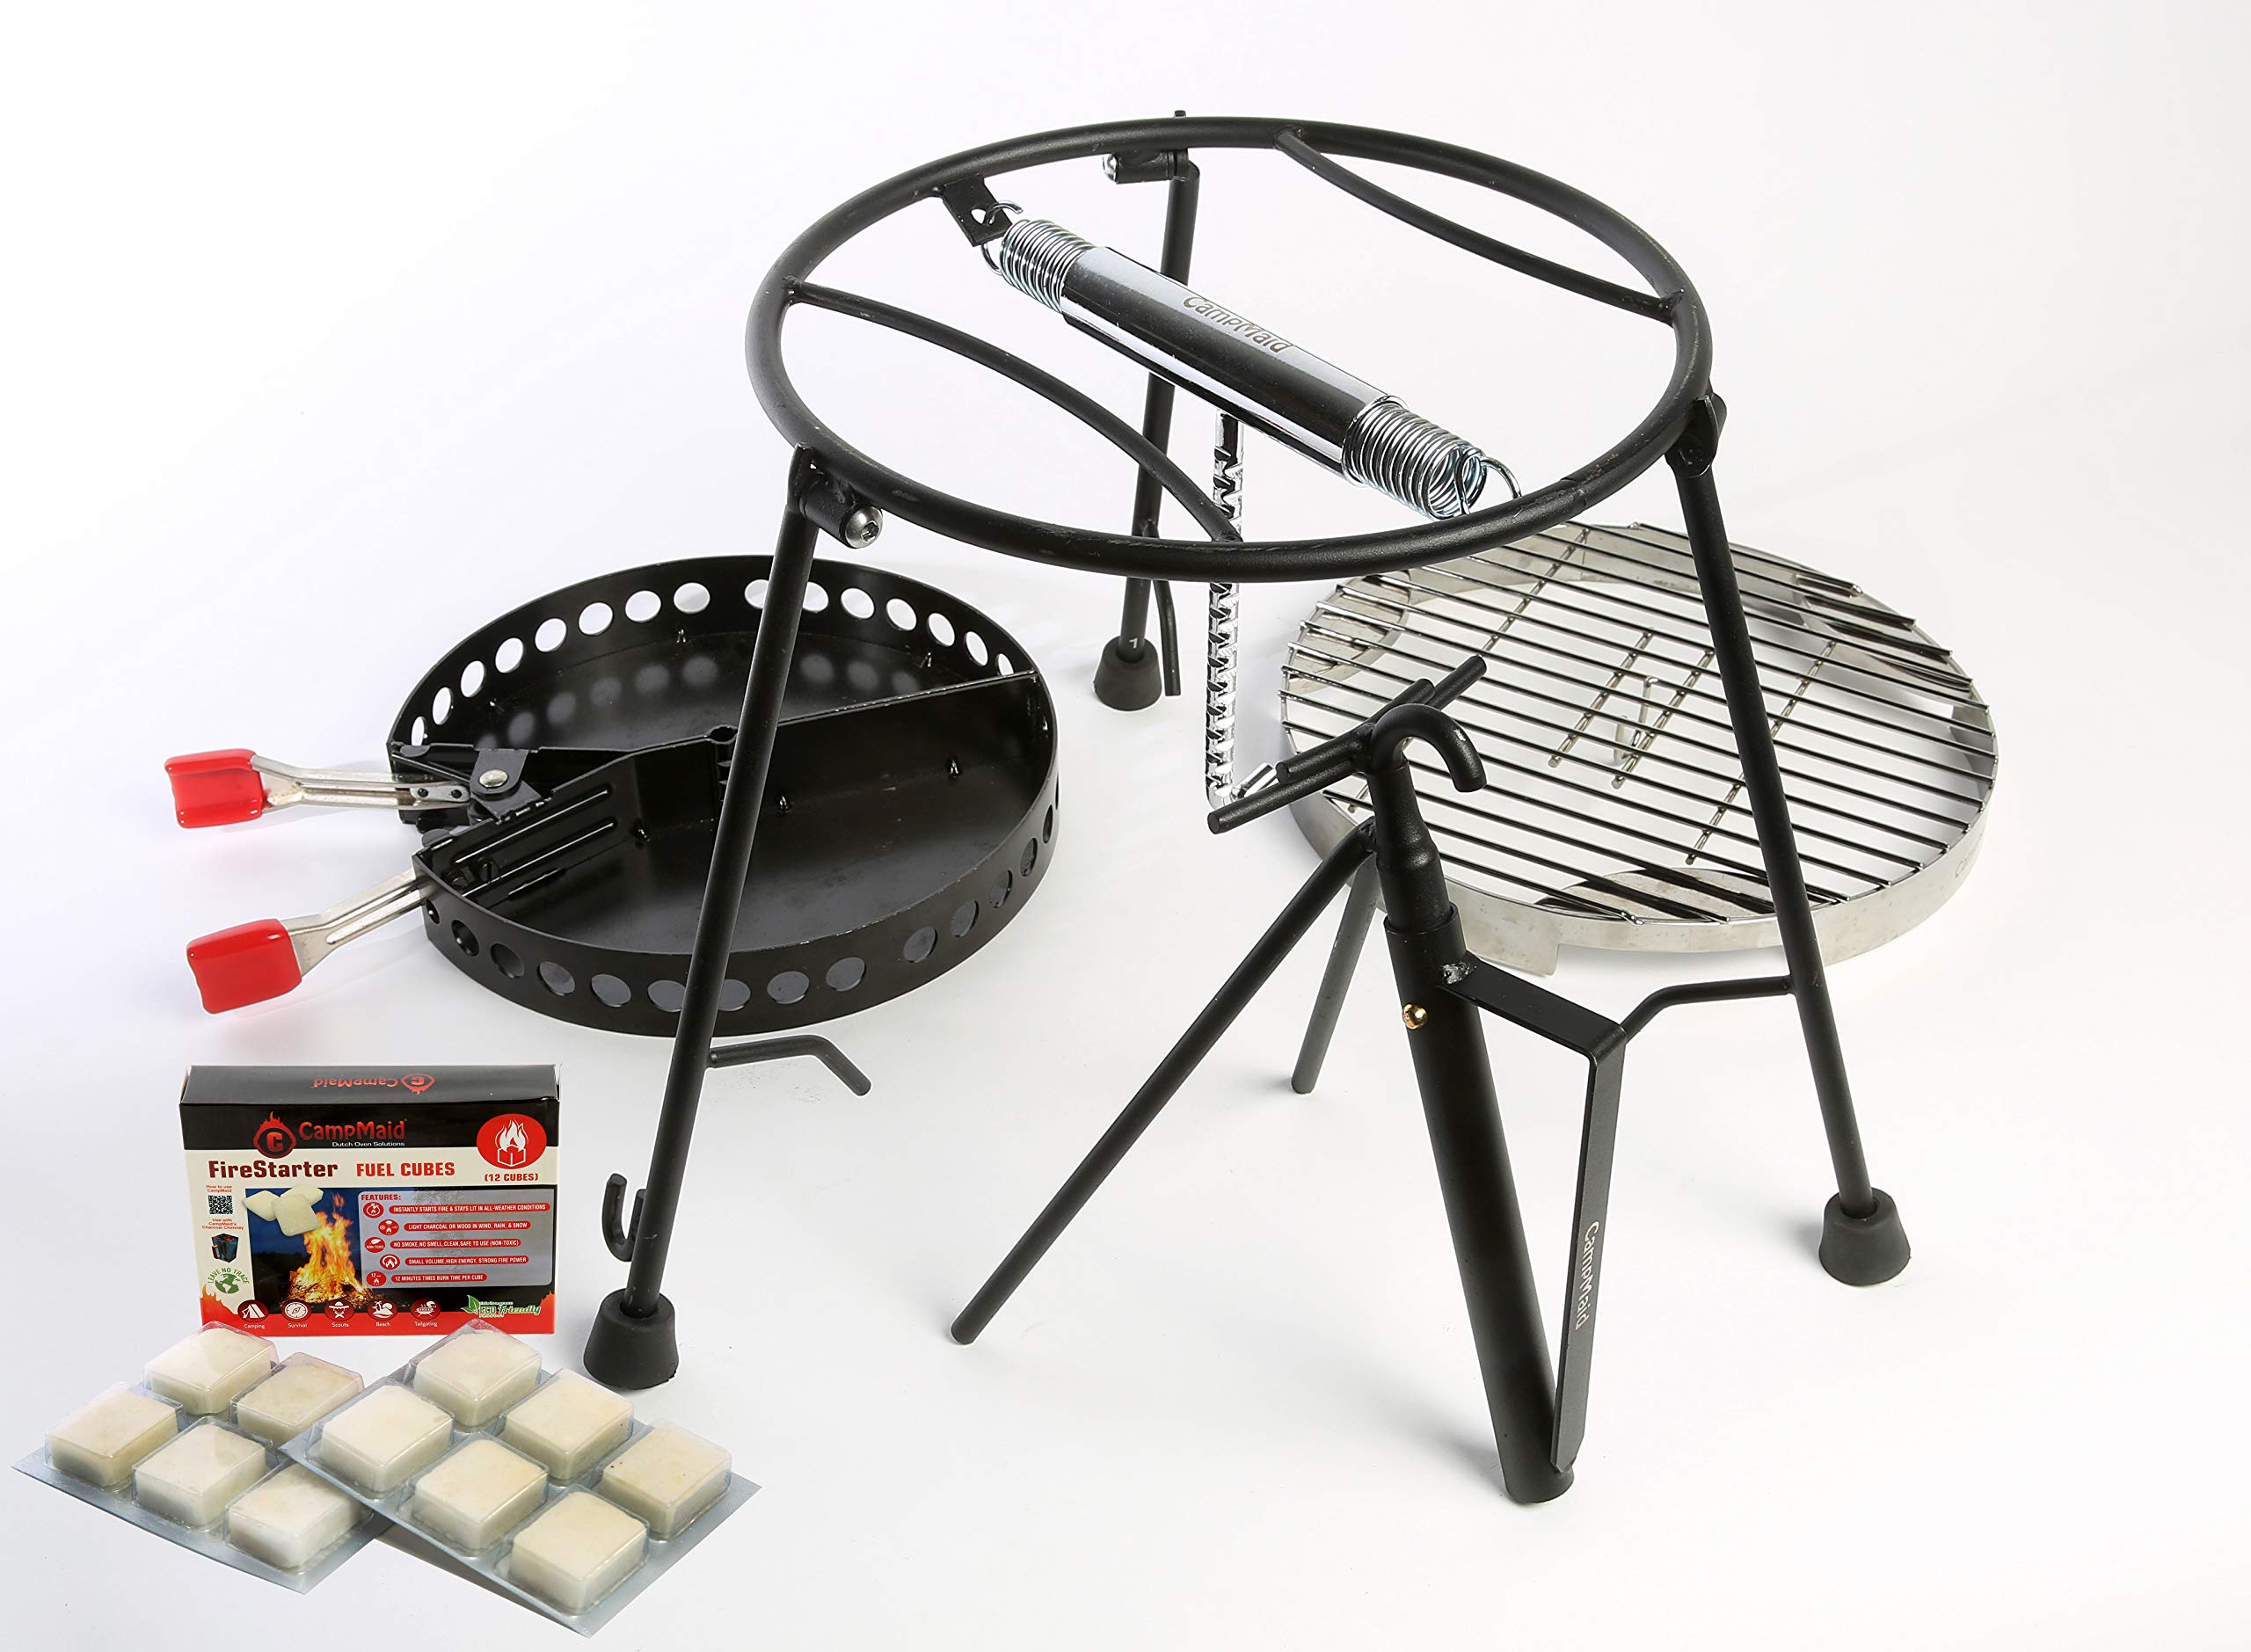 CampMaid Deluxe Dutch Oven Tool Set (4 Piece)